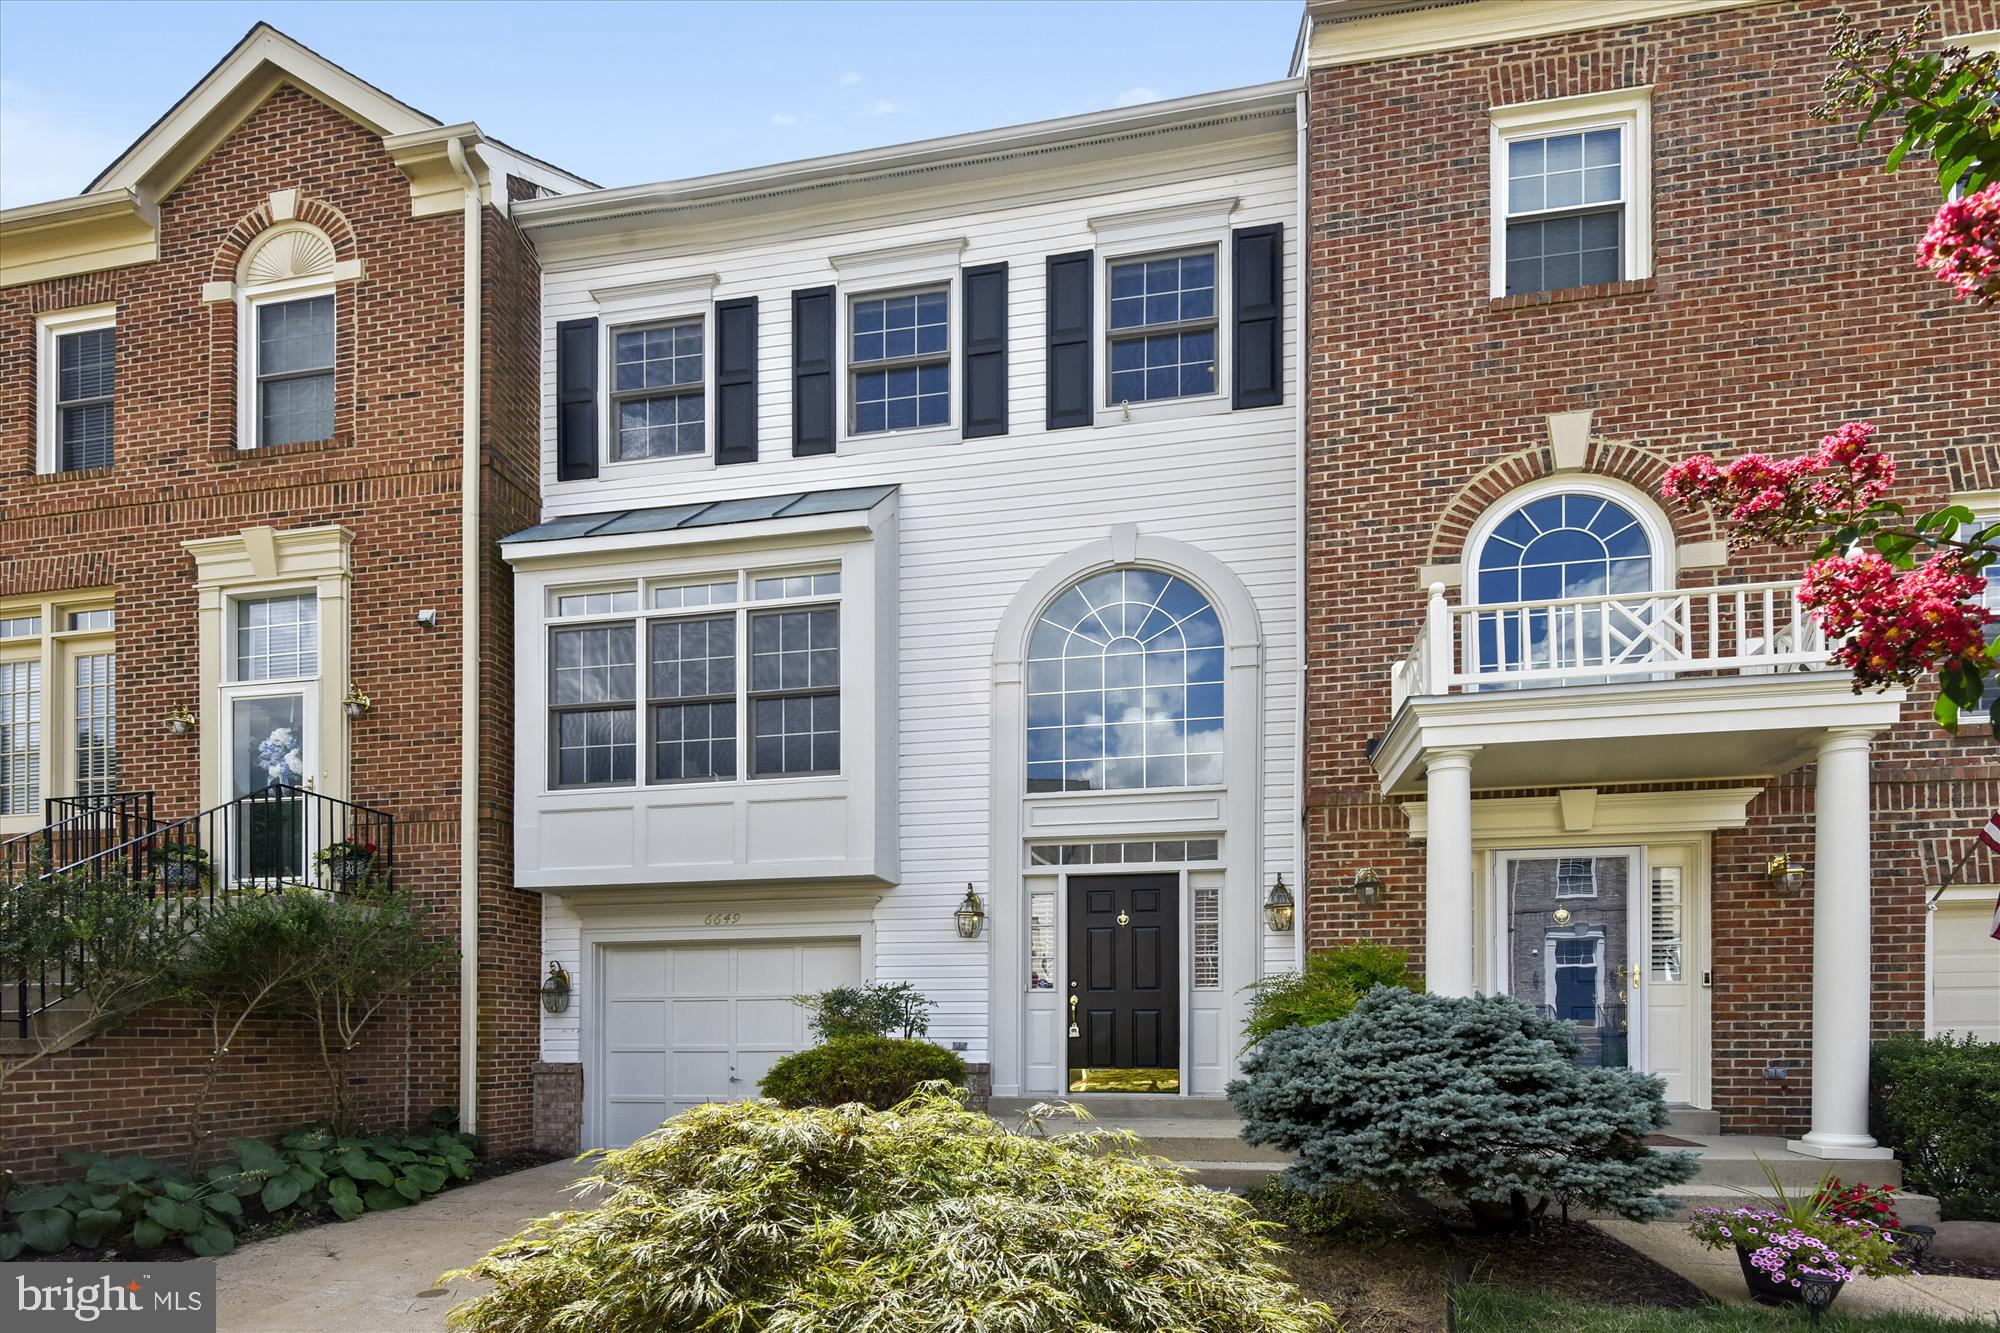 Just What You Have Been Waiting For!  Lovely upgraded 1 car garage townhome located in desirable North Kingstowne neighborhood.  Hardwood floors on 3 levels, with remodeled bathrooms and upgraded kitchen.  2 gas fireplaces located in recreation room and family room. Full bath on lower level- perfect for guests.  Spacious master bedroom suite w/ walk-in closet and remodeled master bathroom.  Luxurious corner shower and dual sinks w/ plenty of room to spread out.  Vaulted ceilings and fans in all bedrooms.  Roof and fridge recently installed.  Newer hot water heater. Short stroll to shops, restaurants and movie theater!